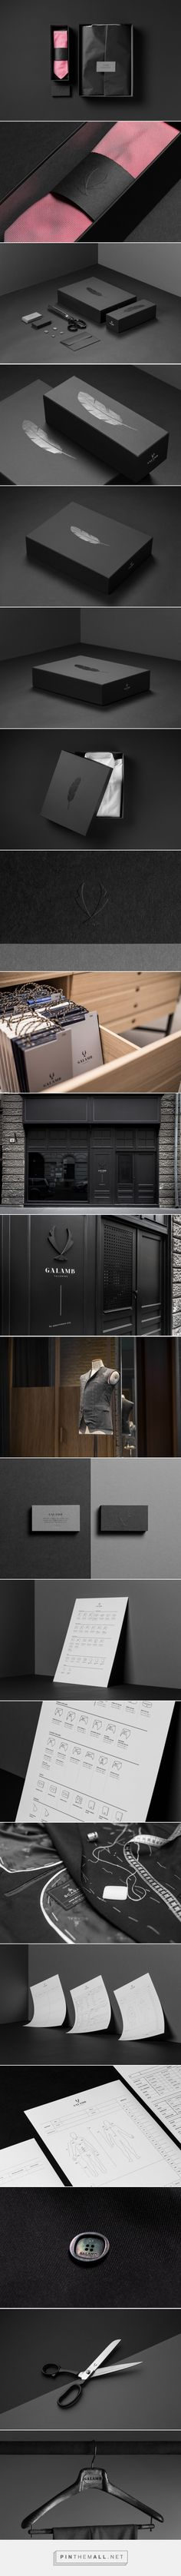 Galamb Tailoring  - Packaging of the World - Creative Package Design Gallery…